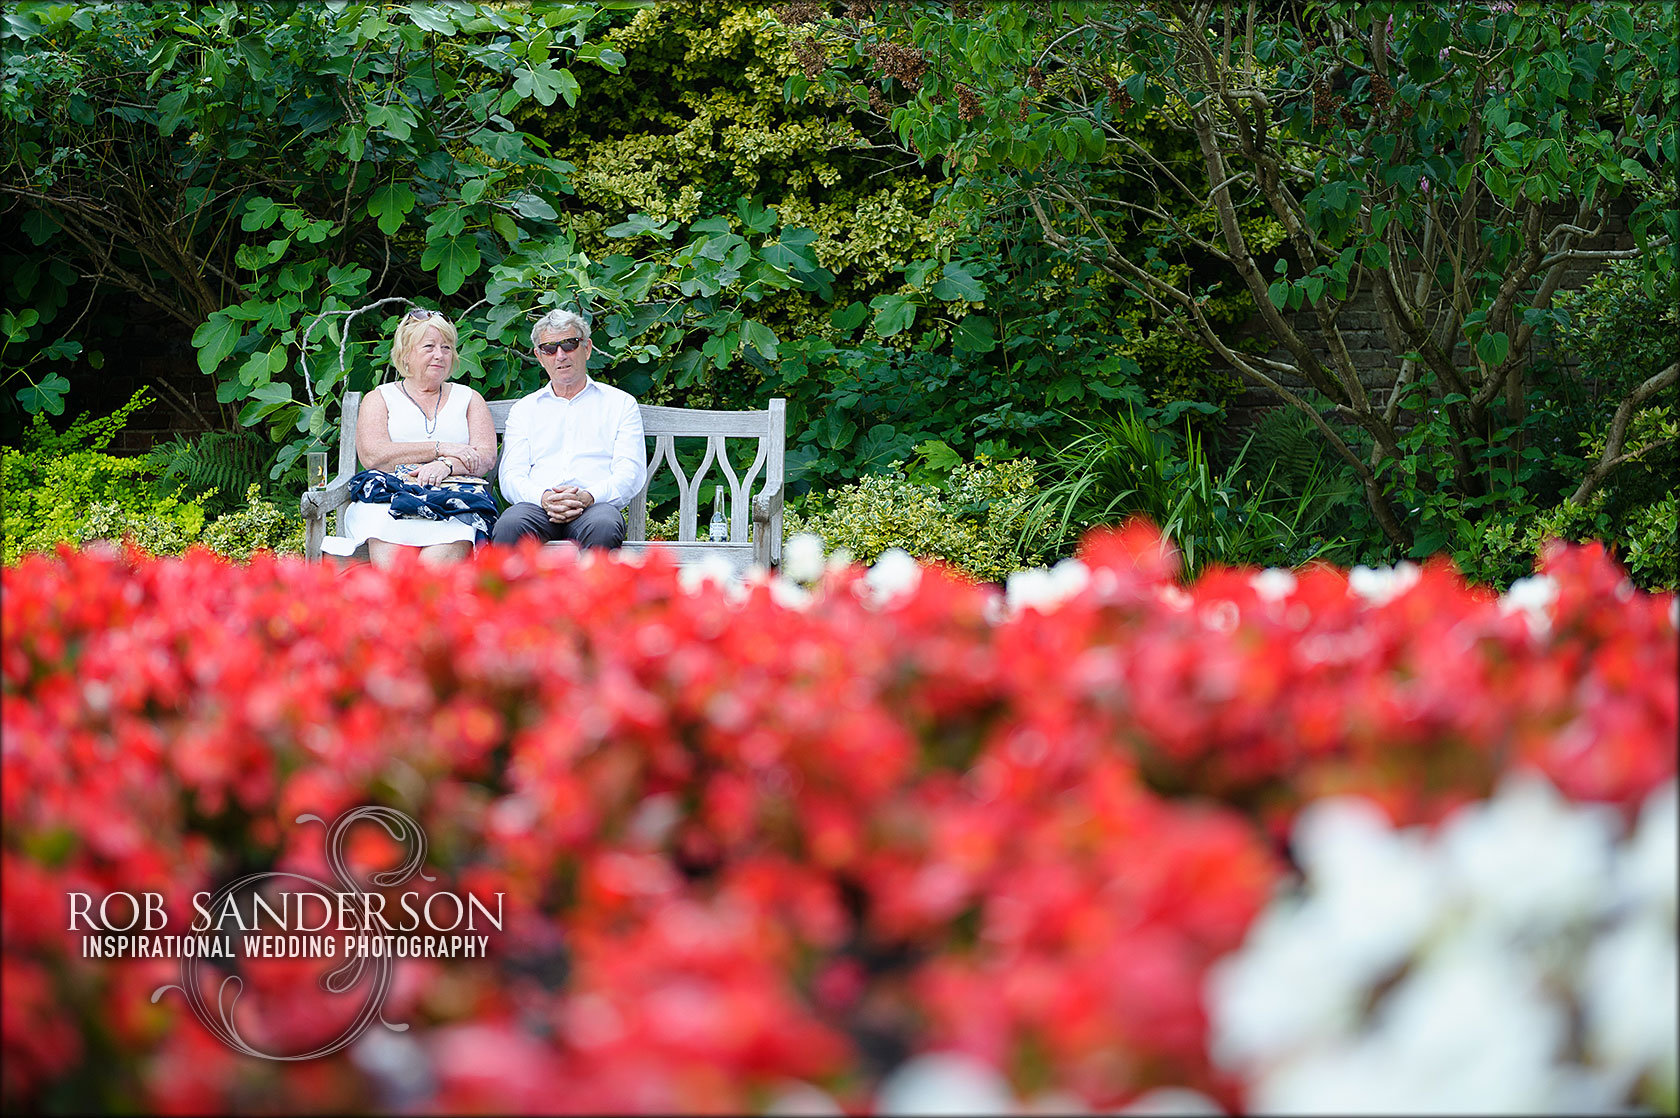 Guests enjoy Soughton Hall's beautiful gardens